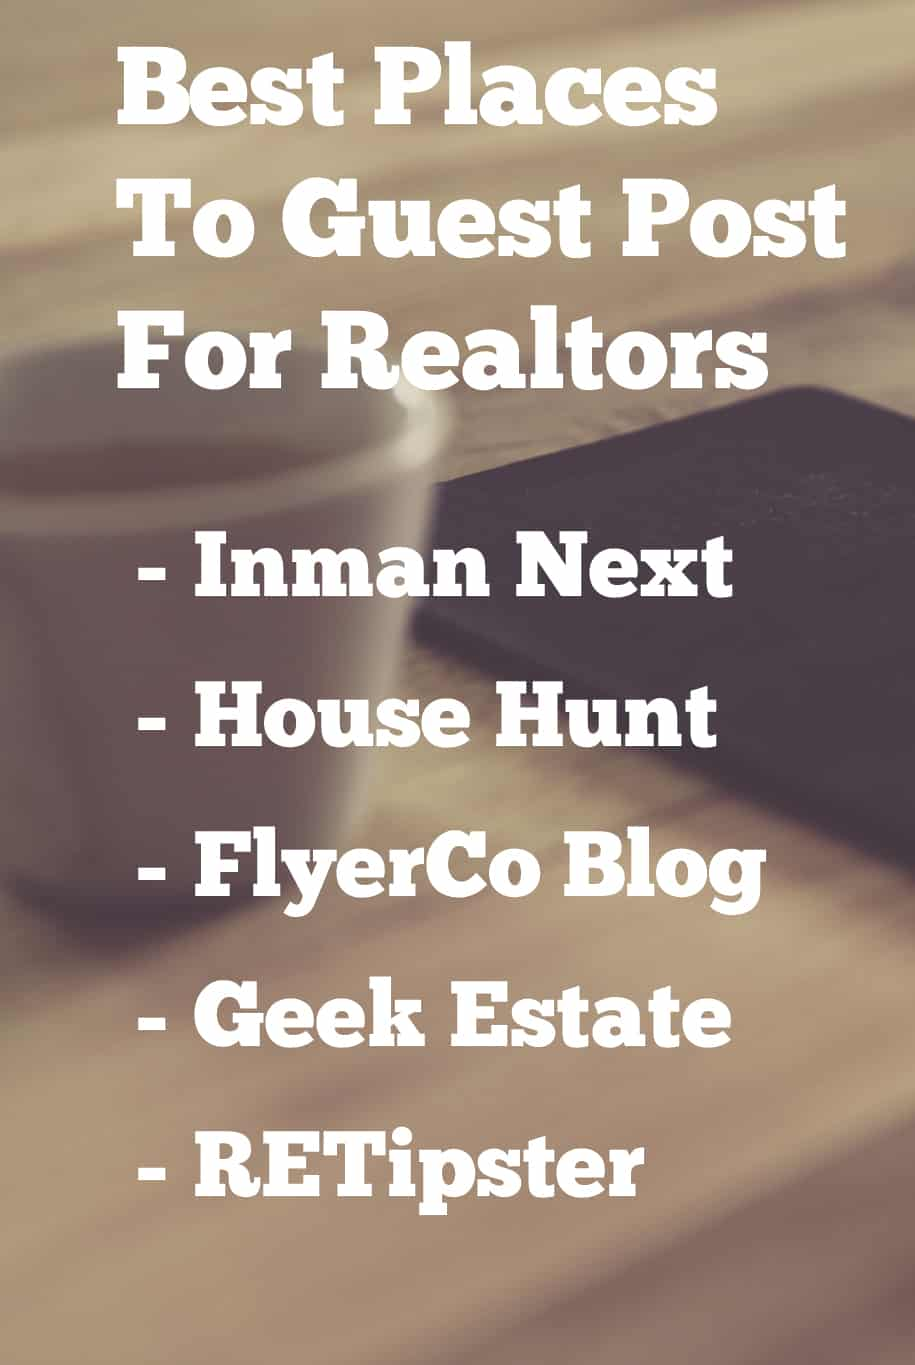 Guest Posting For Realtors: Why, How & Where - Real Estate